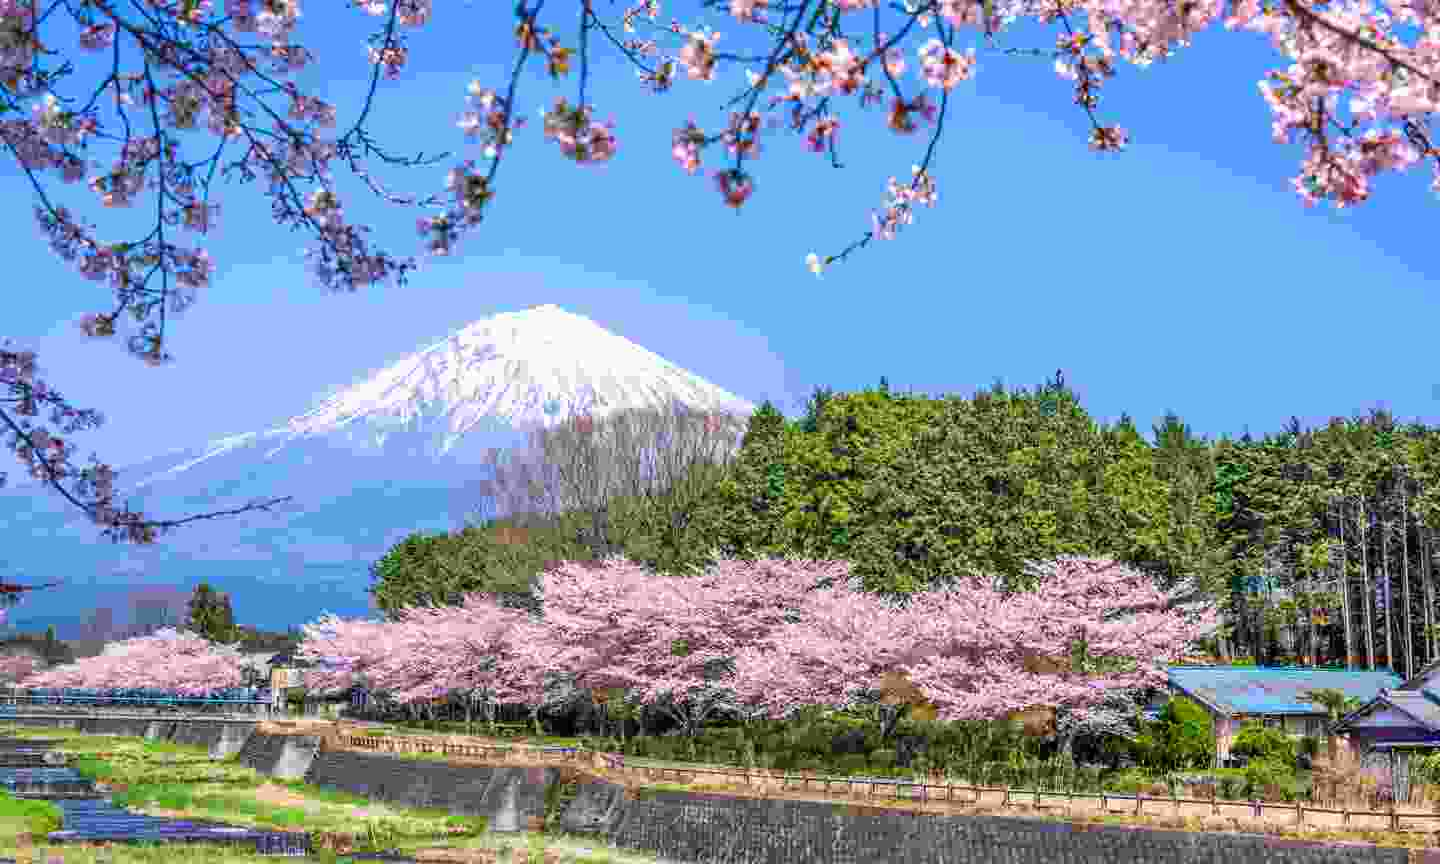 Cherry blossoms near Mount Fuji in spring (Dreamstime)